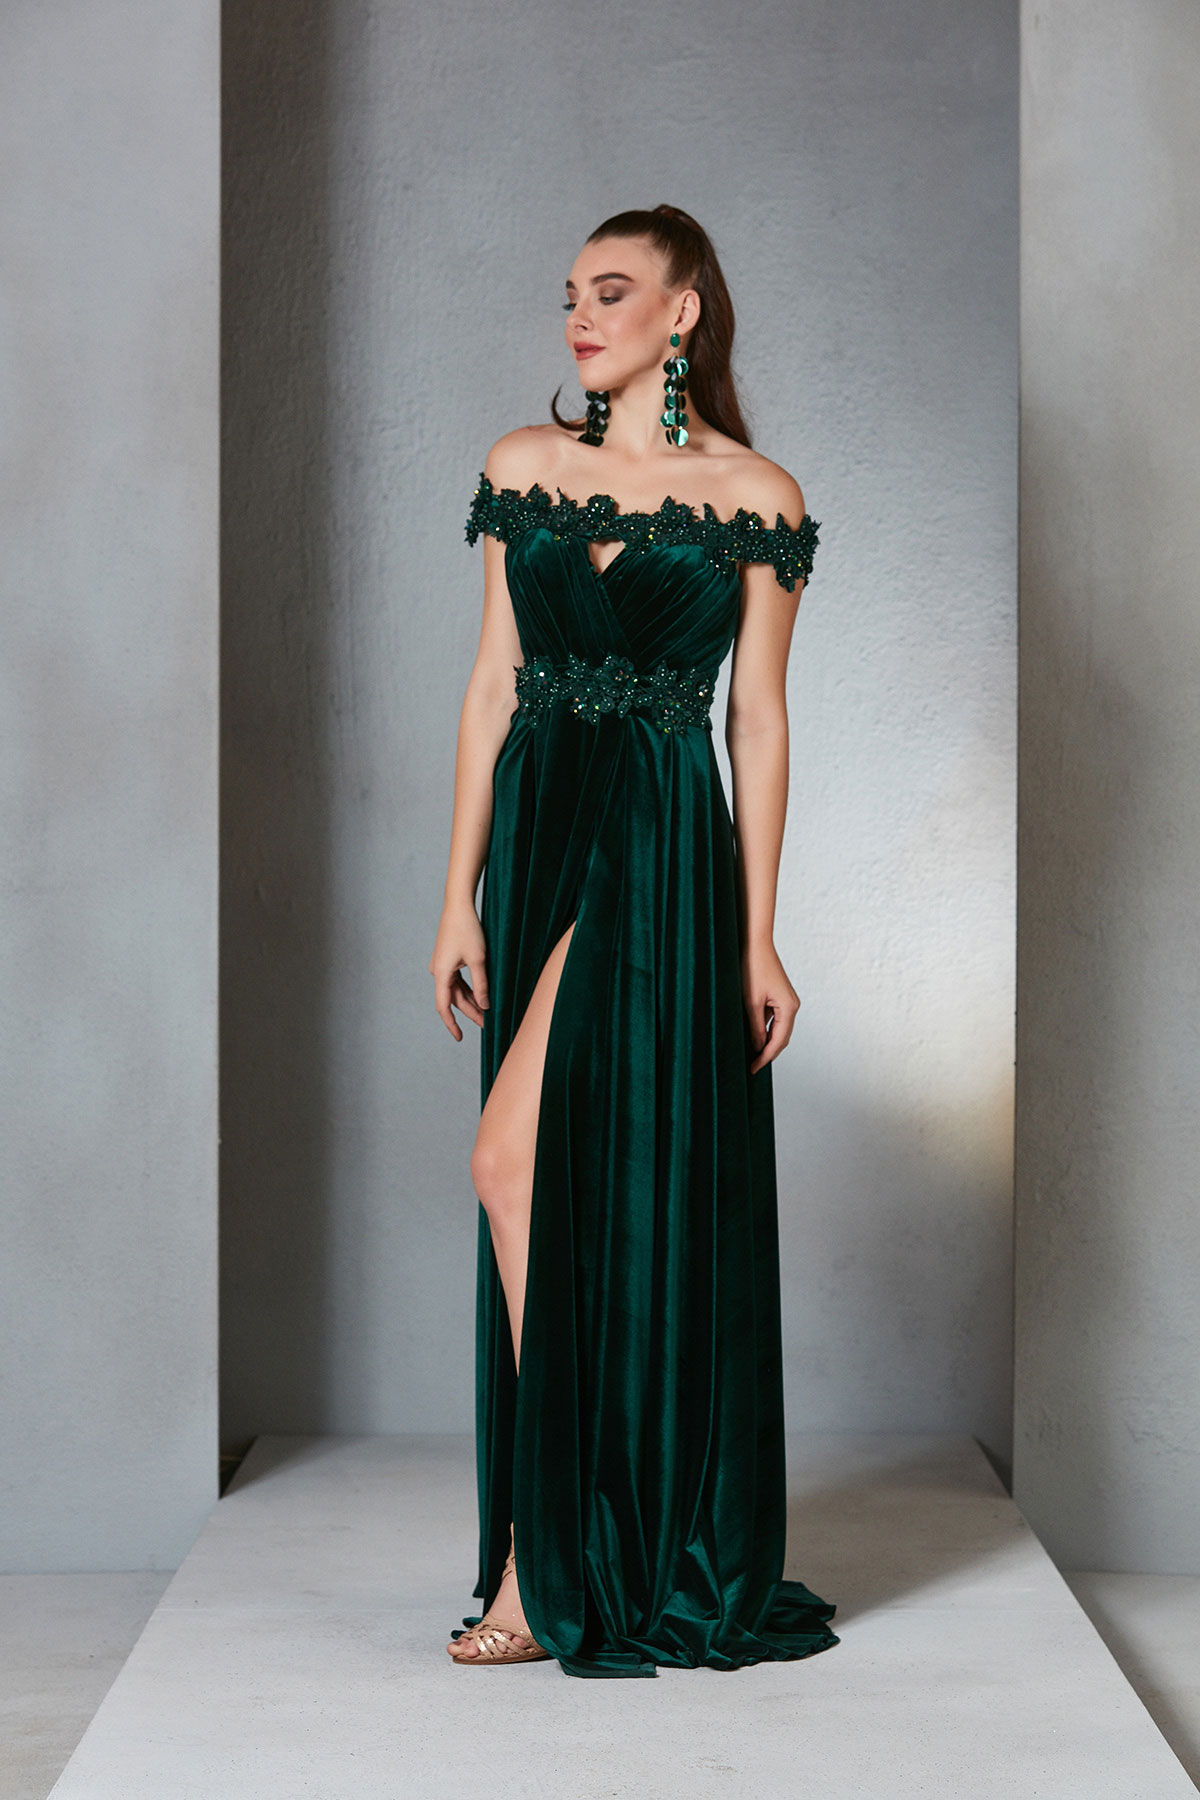 What should be considered when choosing an evening gown?